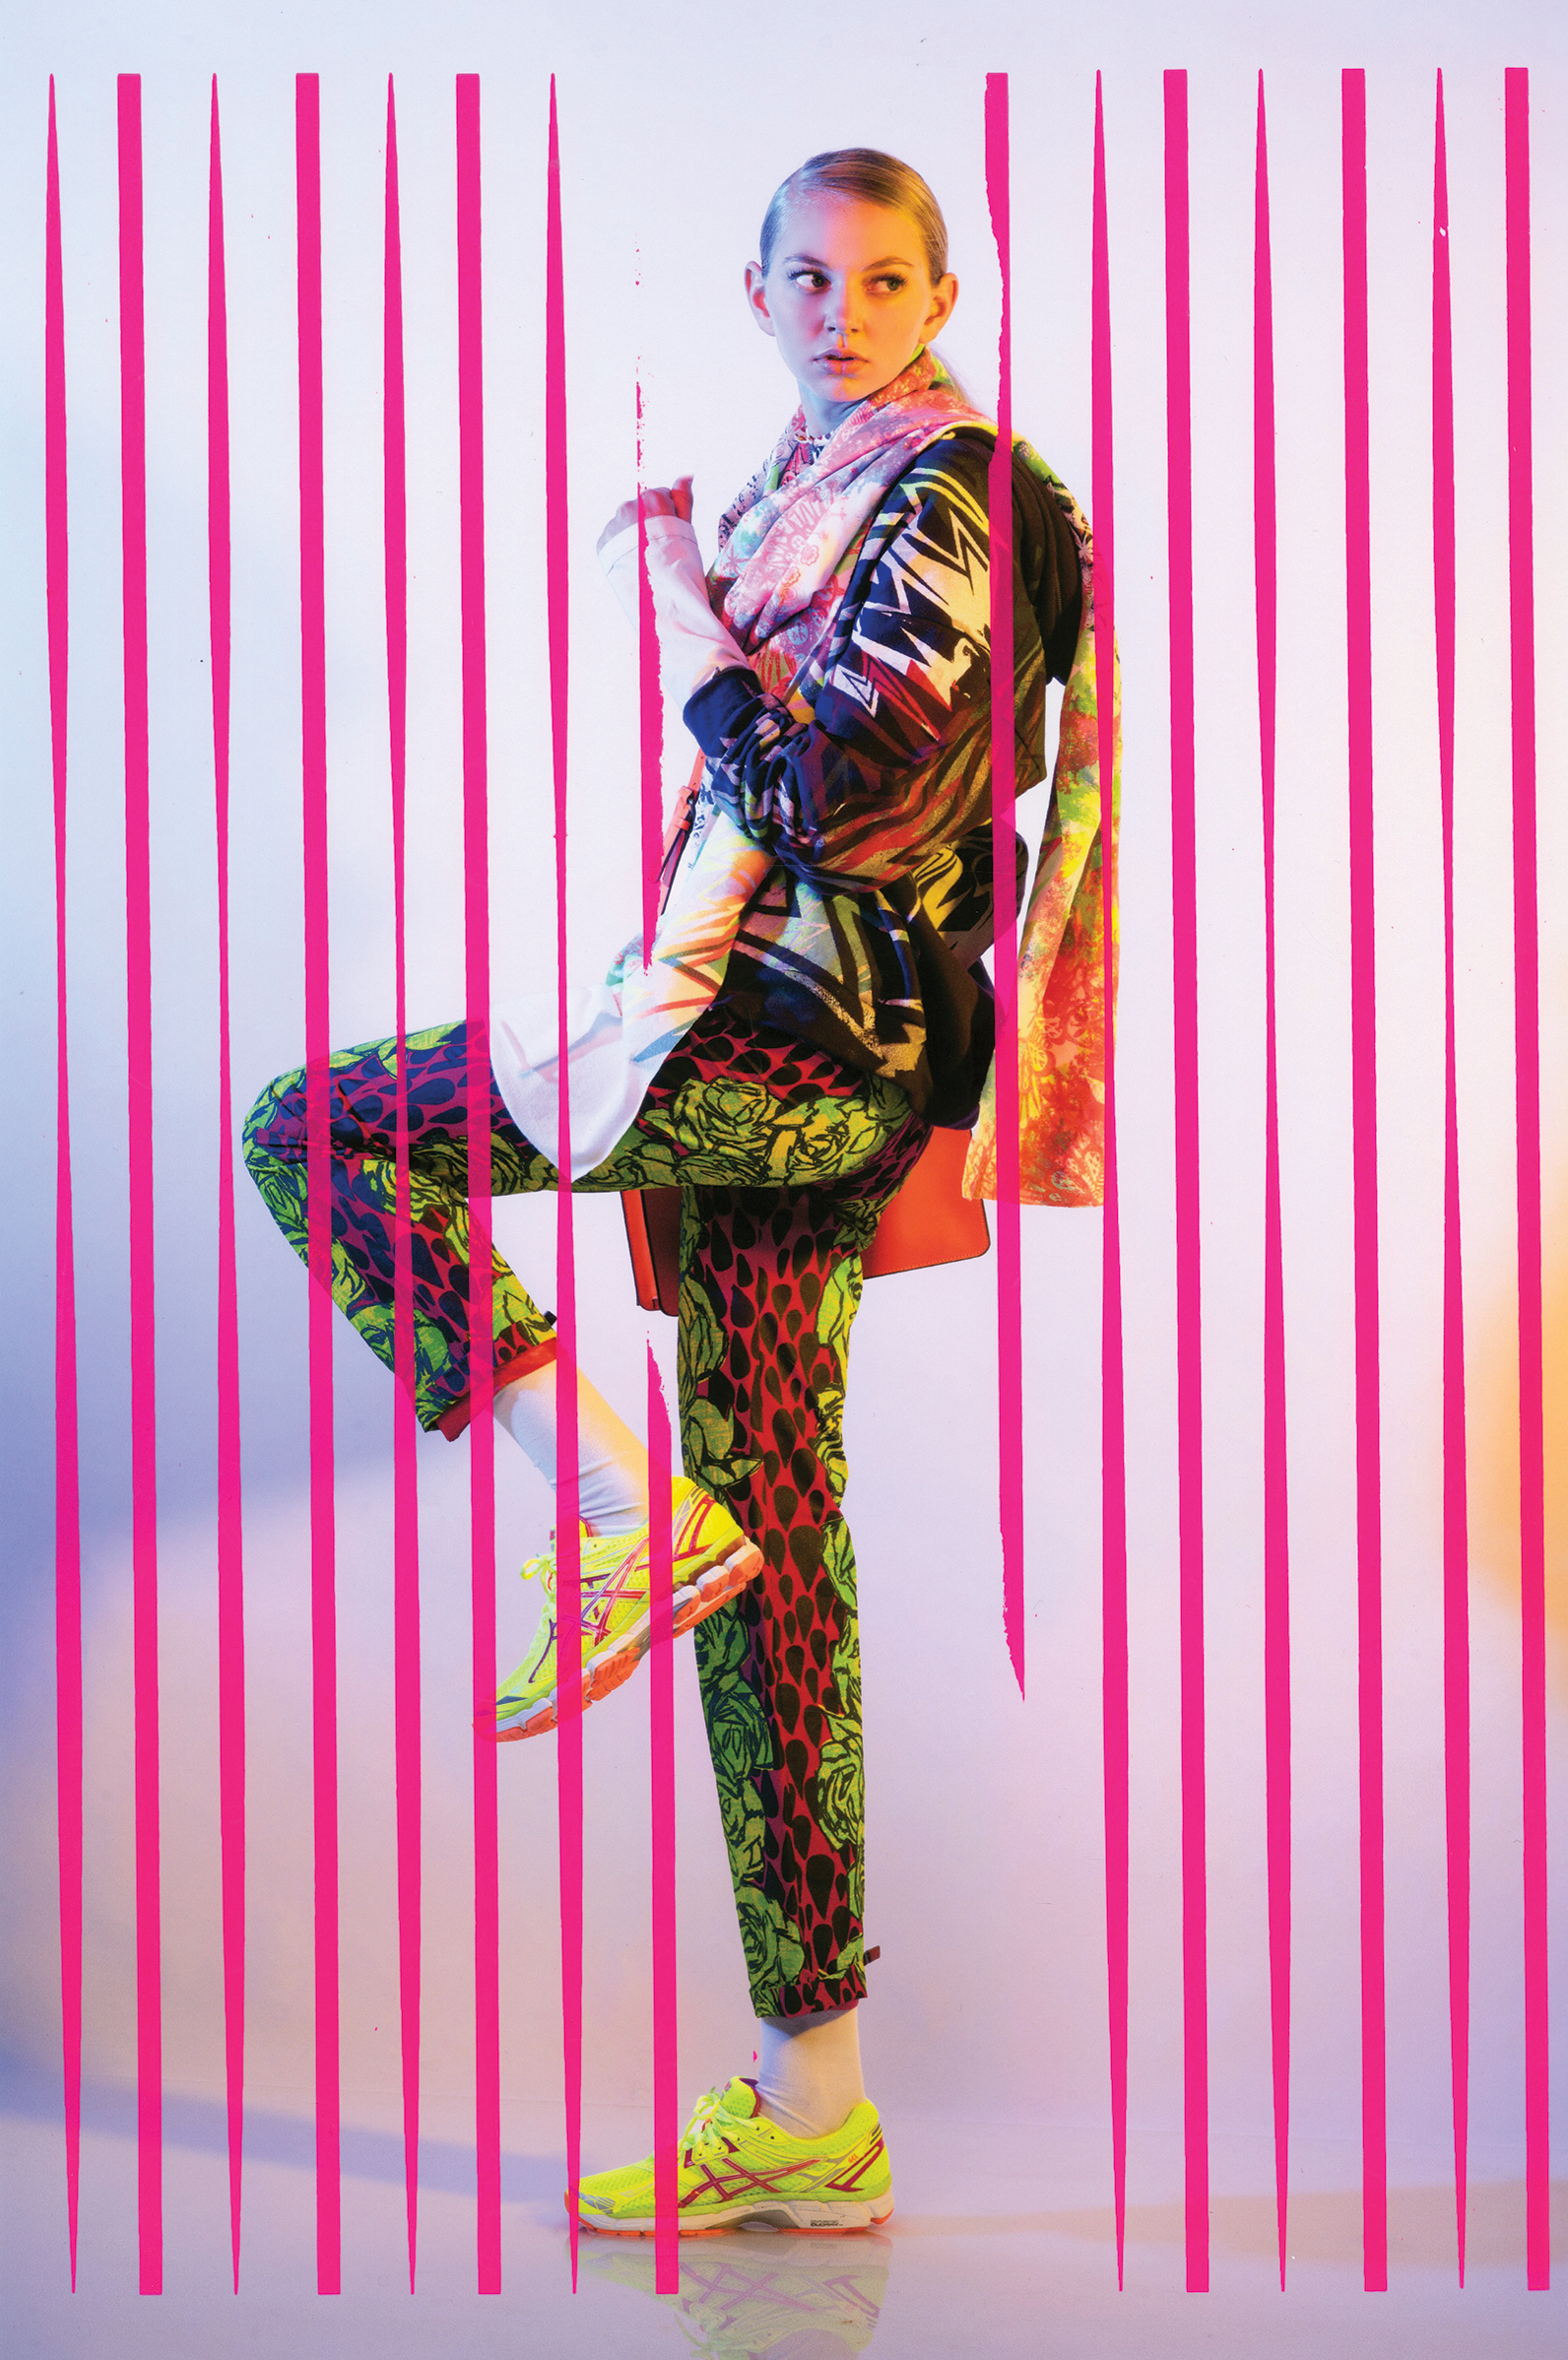 Hoodie and Scarf by Ben Copperwheat. Pants by Jaci Hodges, MFA Fashion Design, and Nisha Btesh, MFA Textile Design.